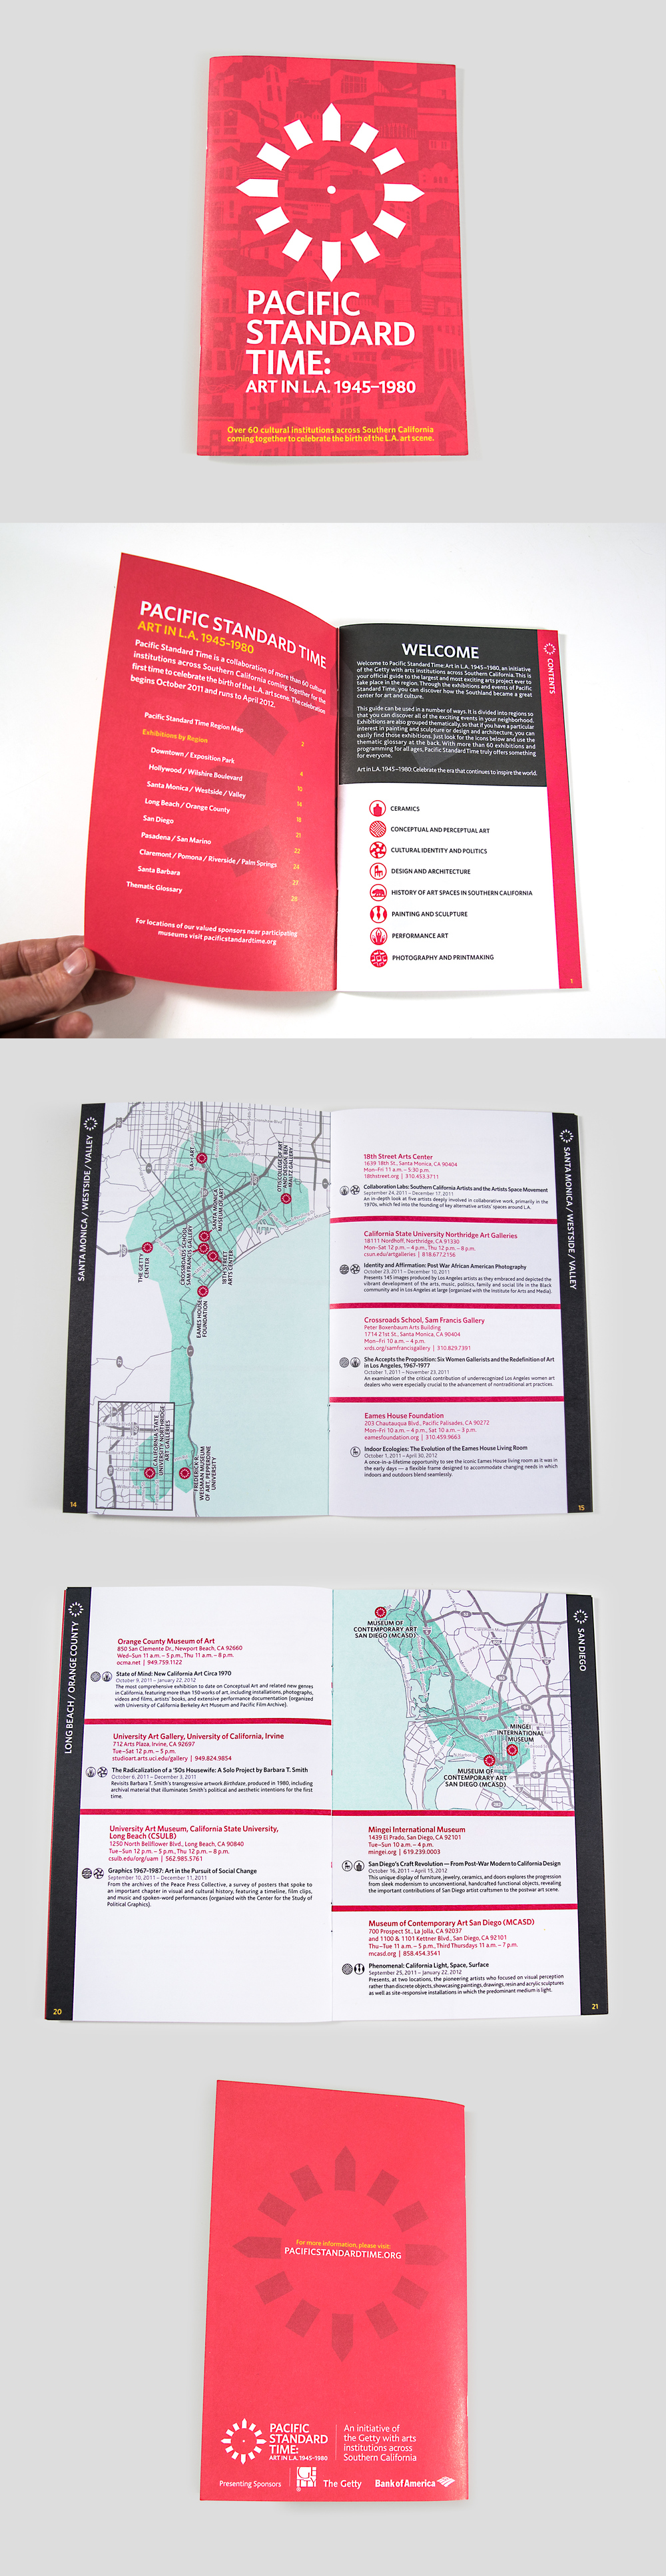 Pacific Standard Time Guide Book: Layout | Production